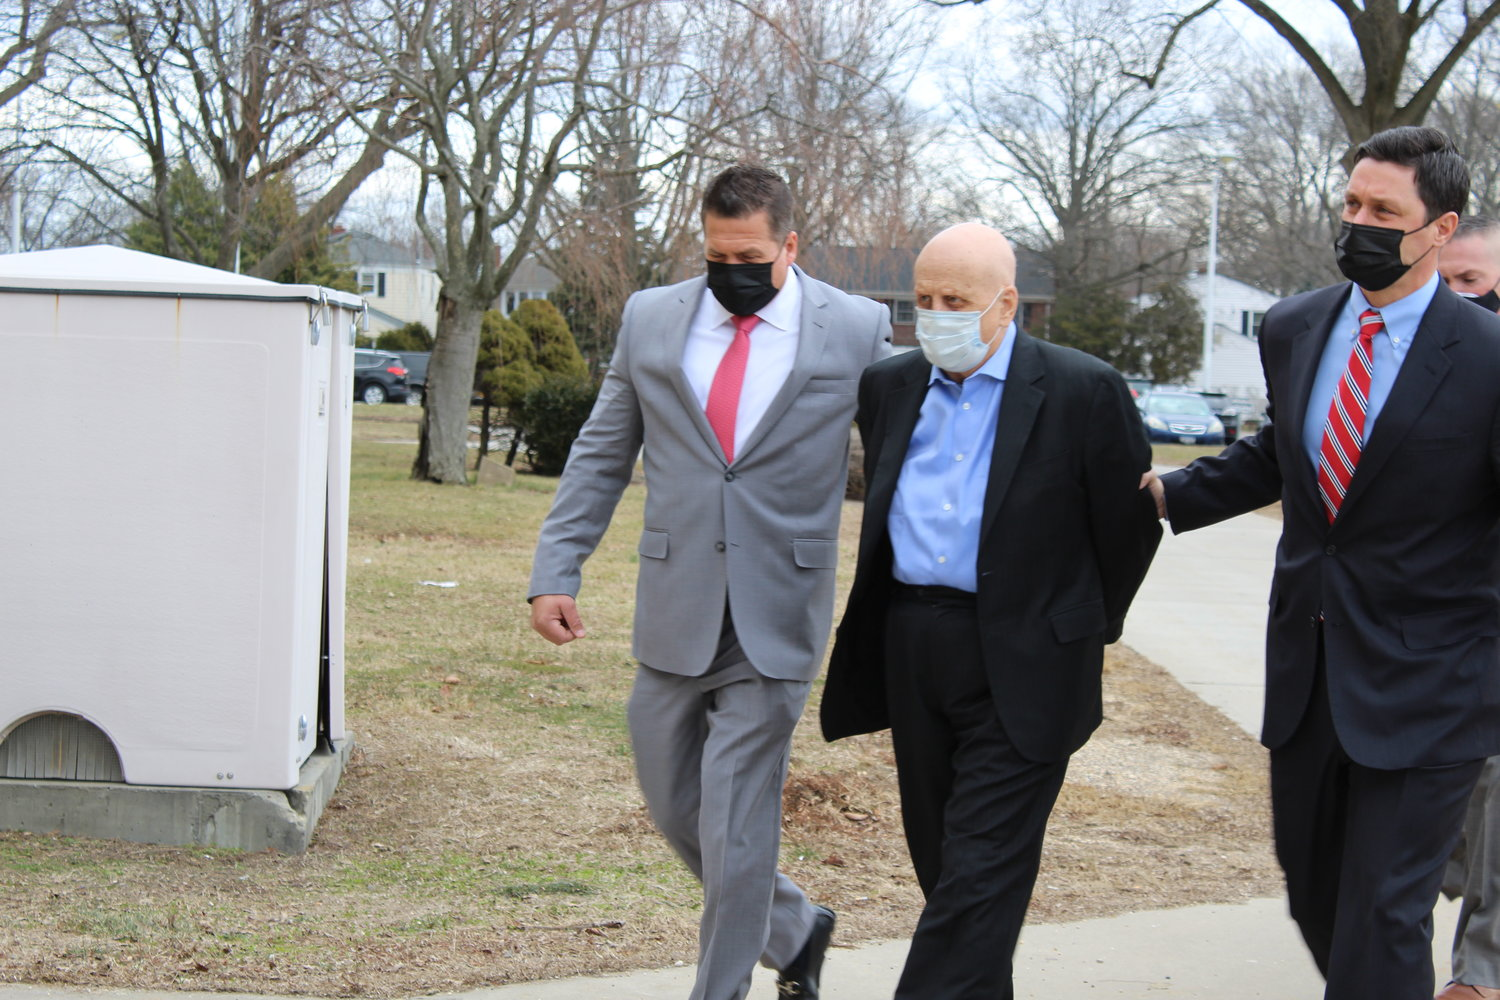 George Blatti, a former doctor from Franklin Square, was escorted into the Nassau County courthouse on Thursday.